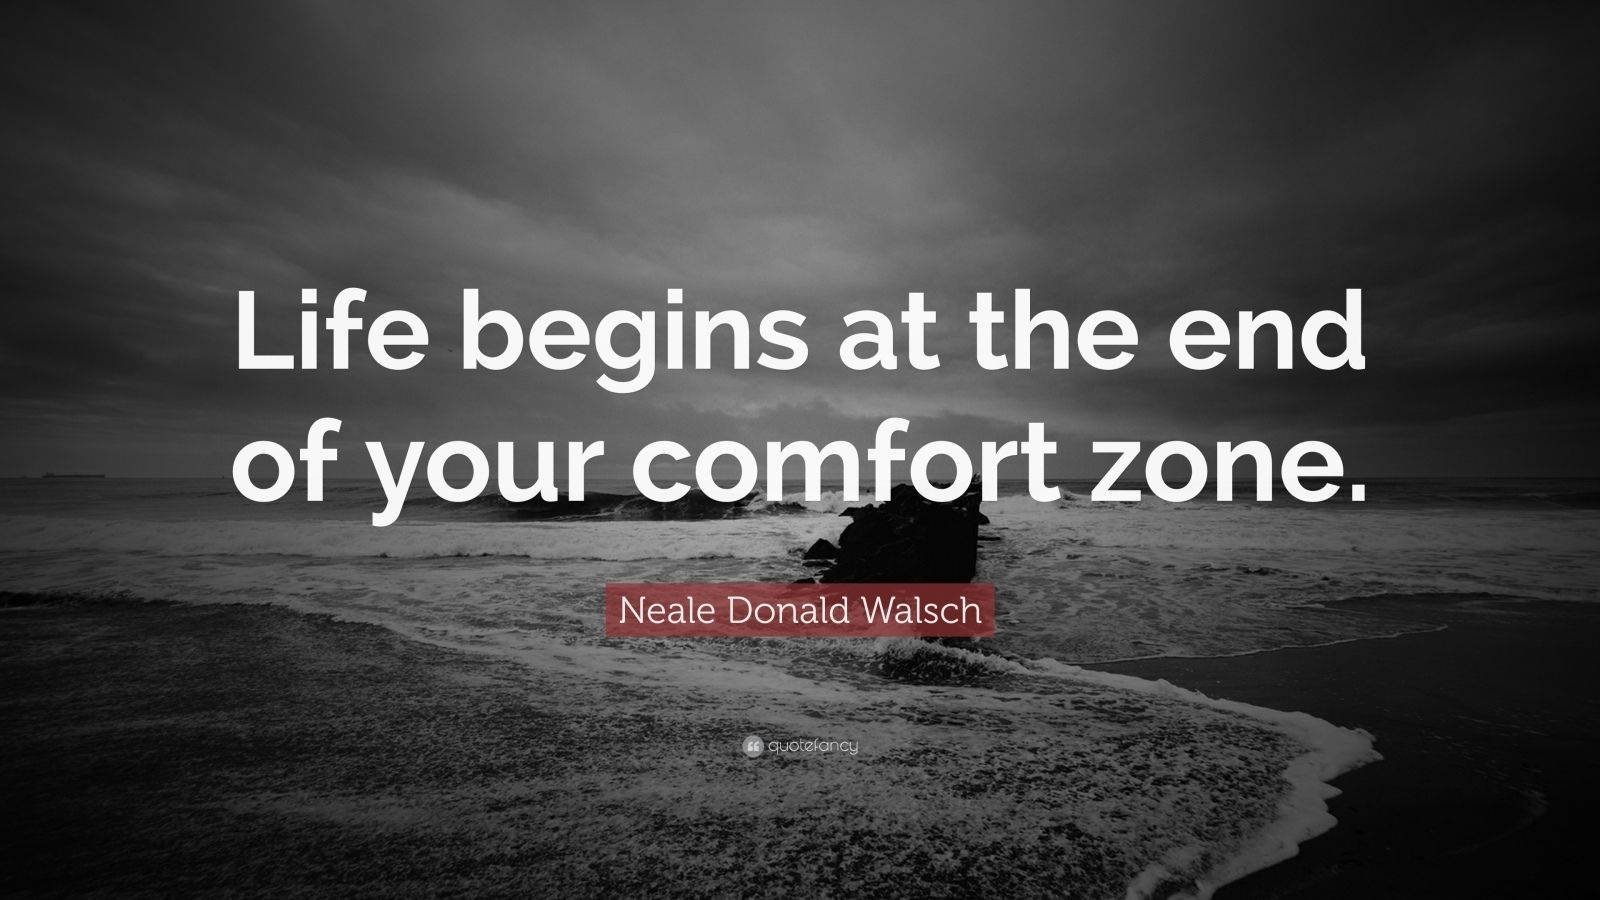 Picture Inspirational Quotes About Life Neale Donald Walsch Quotes 100 Wallpapers  Quotefancy